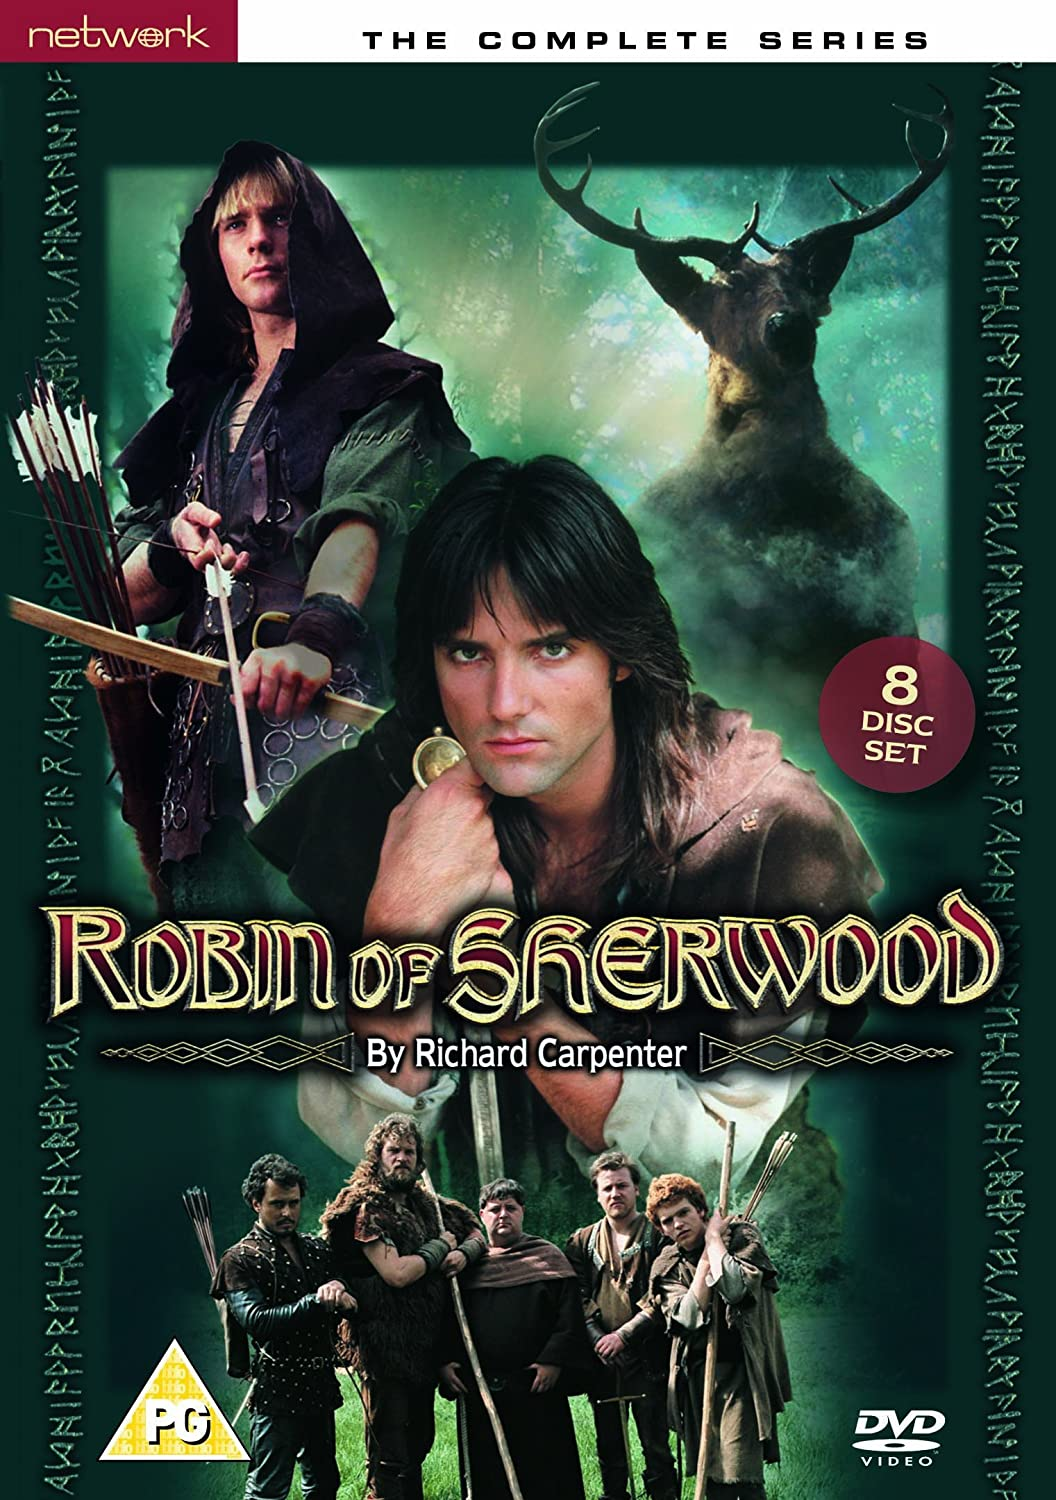 Robin Of Sherwood The Complete Series Dvd Amazon Co Uk Michael Praed Nicholas Grace Ray Winston Jason Connery Michael Praed Nicholas Grace Dvd Blu Ray